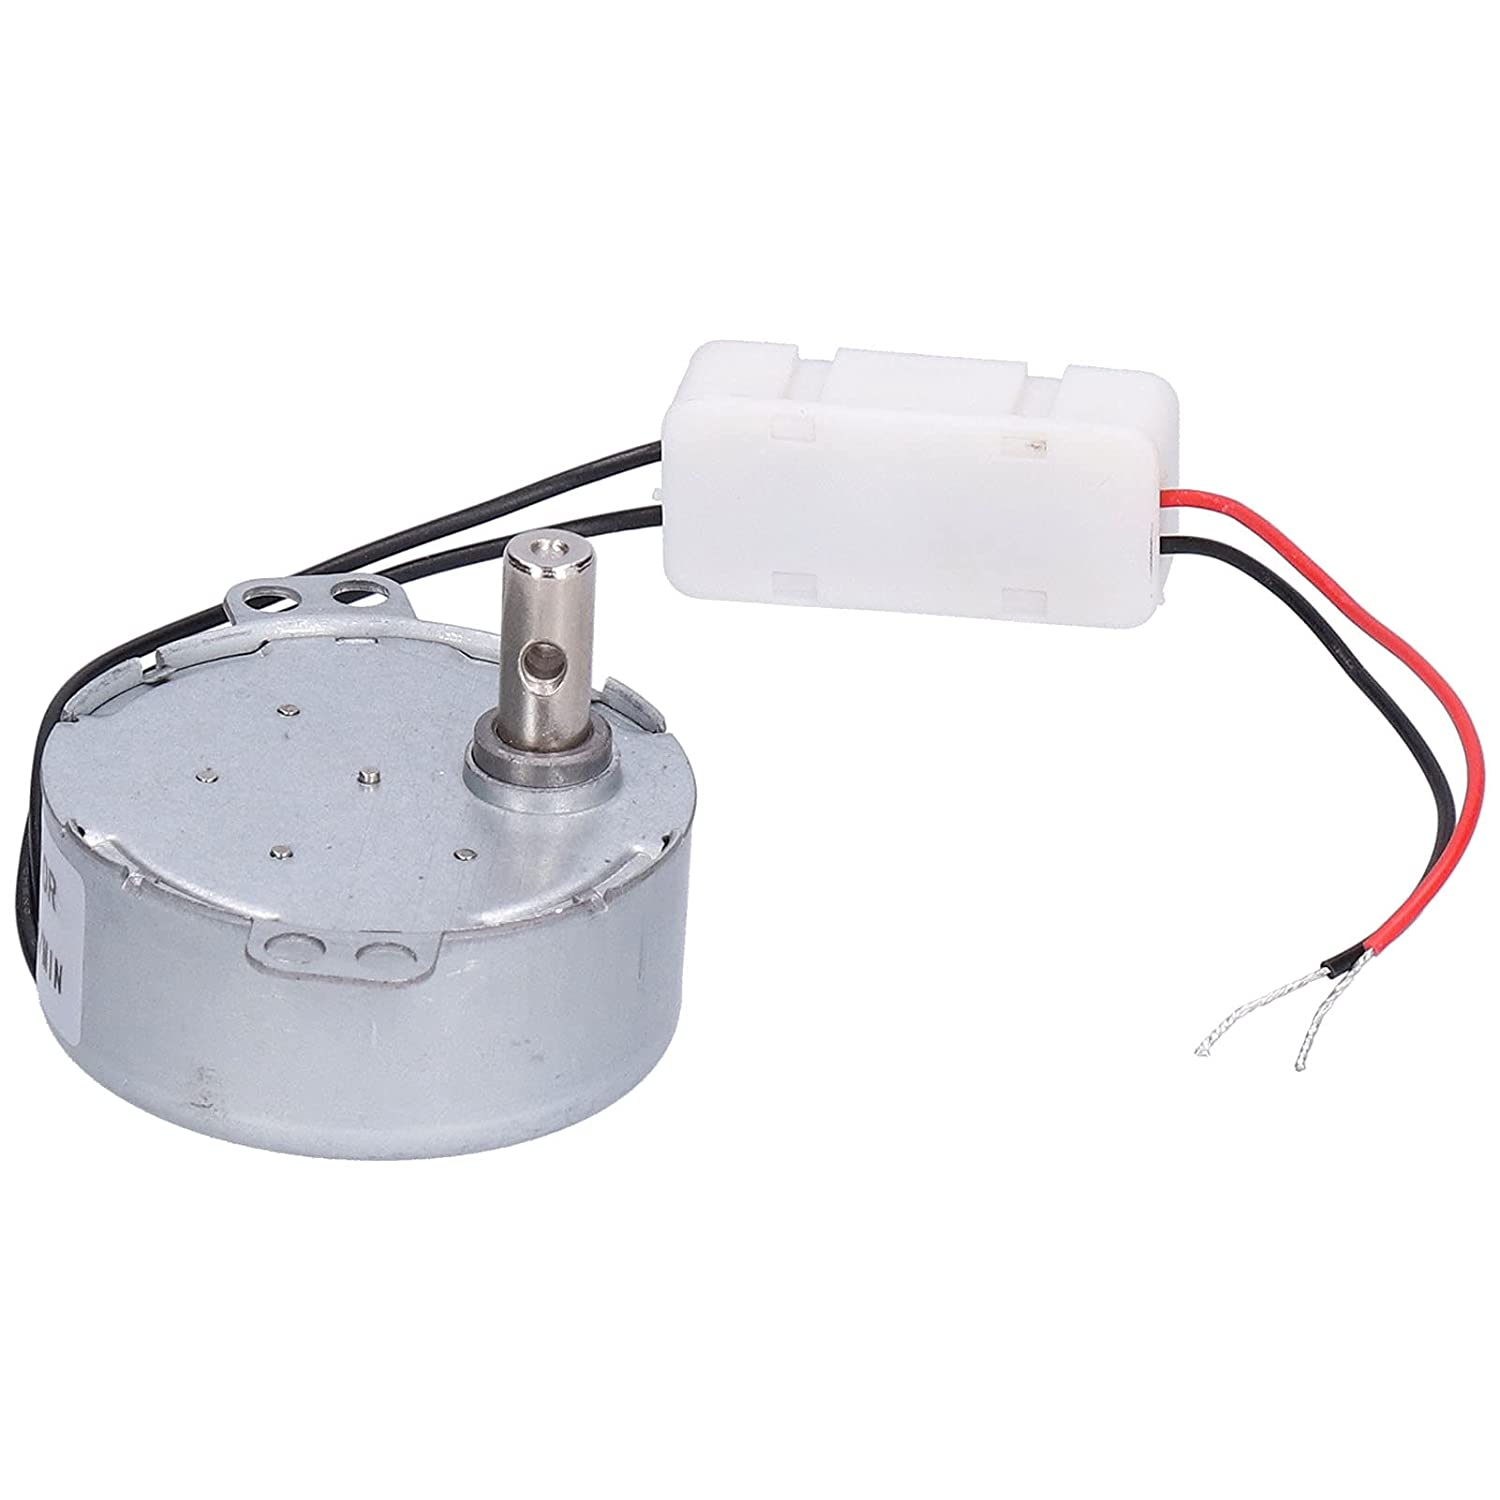 DC Motor Outstanding Micro Reduction Low Christ Consumption Seasonal Wrap Introduction Power for